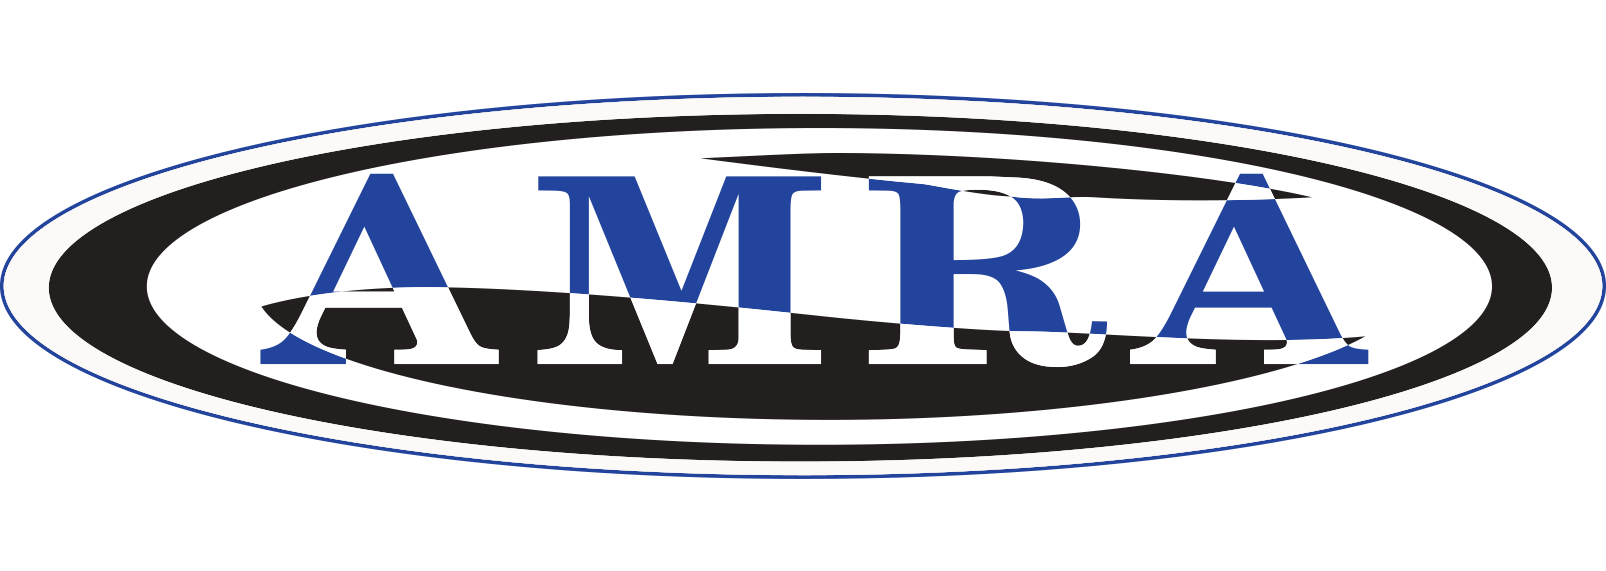 American Motorcycle Racing Association, All Harley Davidson Drag Racing